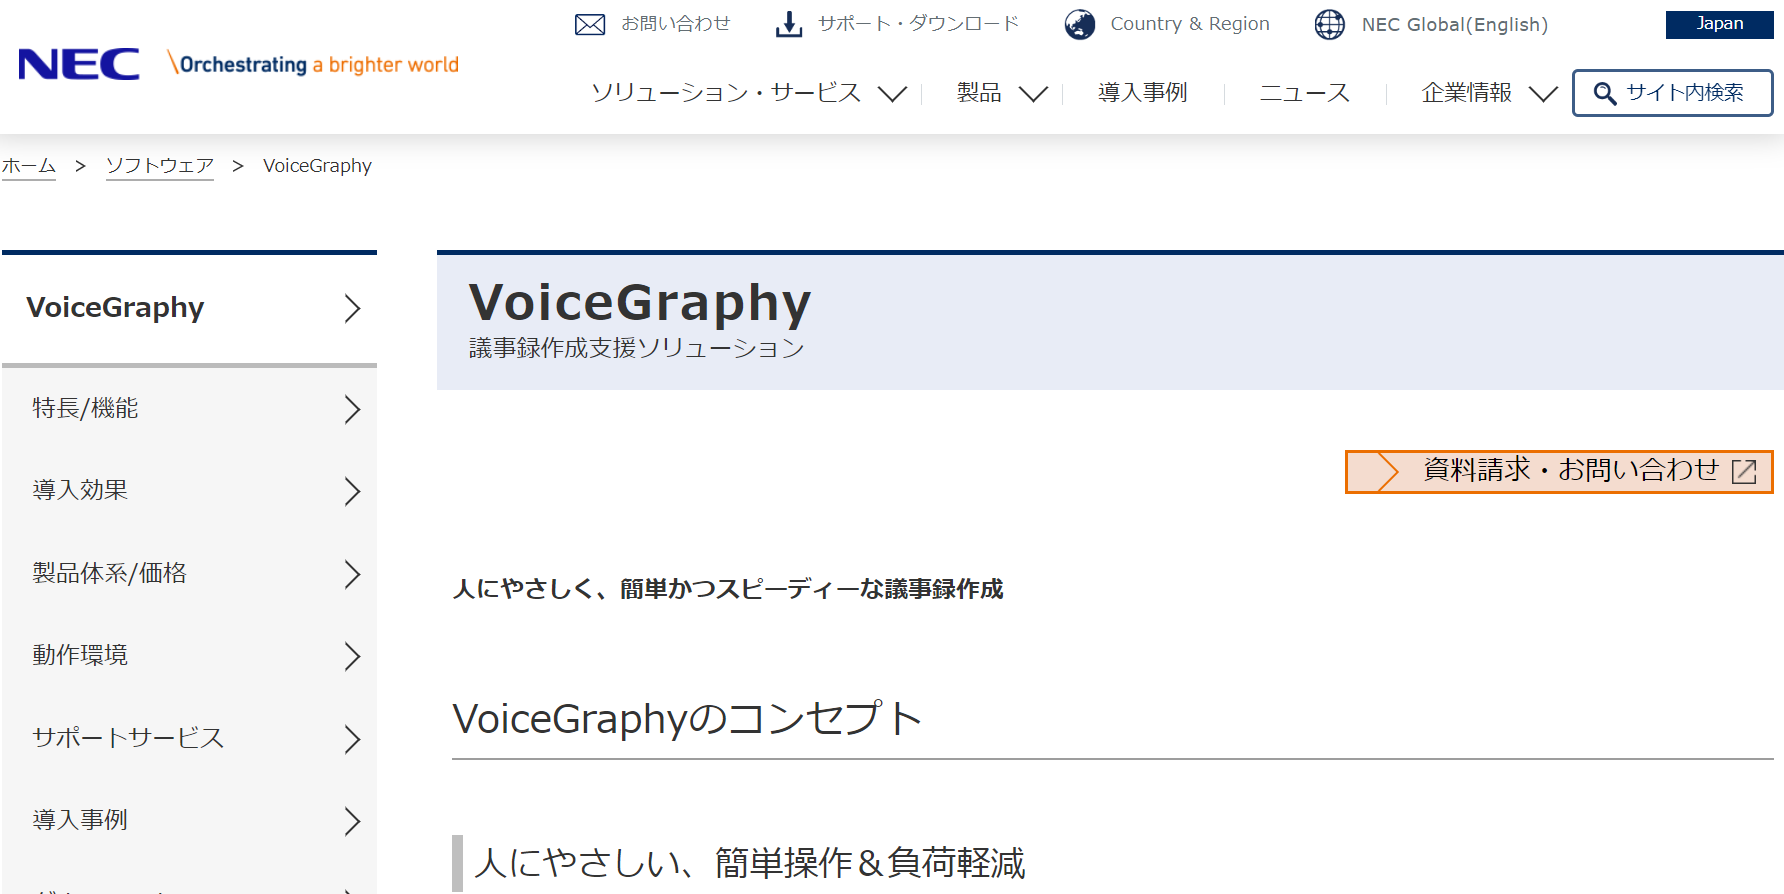 VoiceGraphy